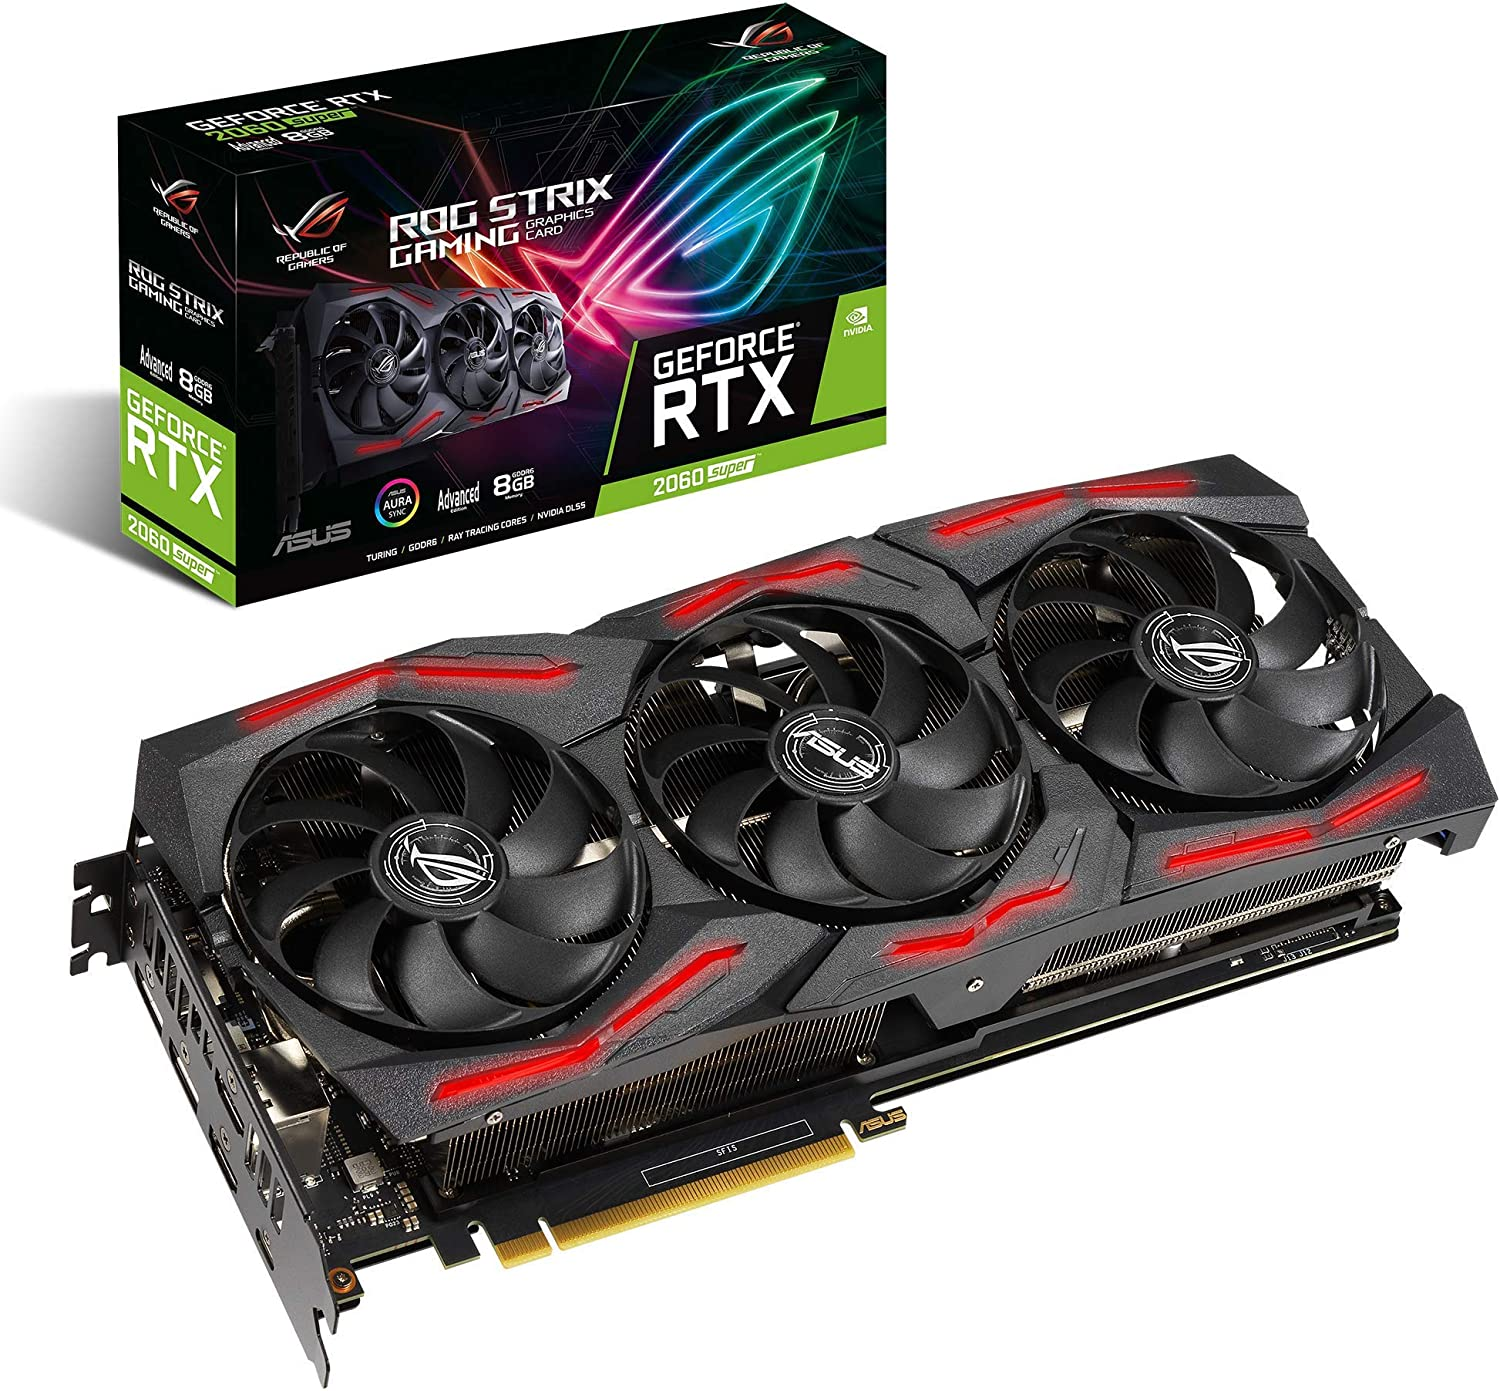 ASUS ROG Strix GeForce RTX 2060 Super Advanced Overclocked EVO 8G GDDR6 HDMI DisplayPort USB Type-C Gaming Graphics Card (ROG-STRIX-RTX2060S-A8G-EVO-GAMING)